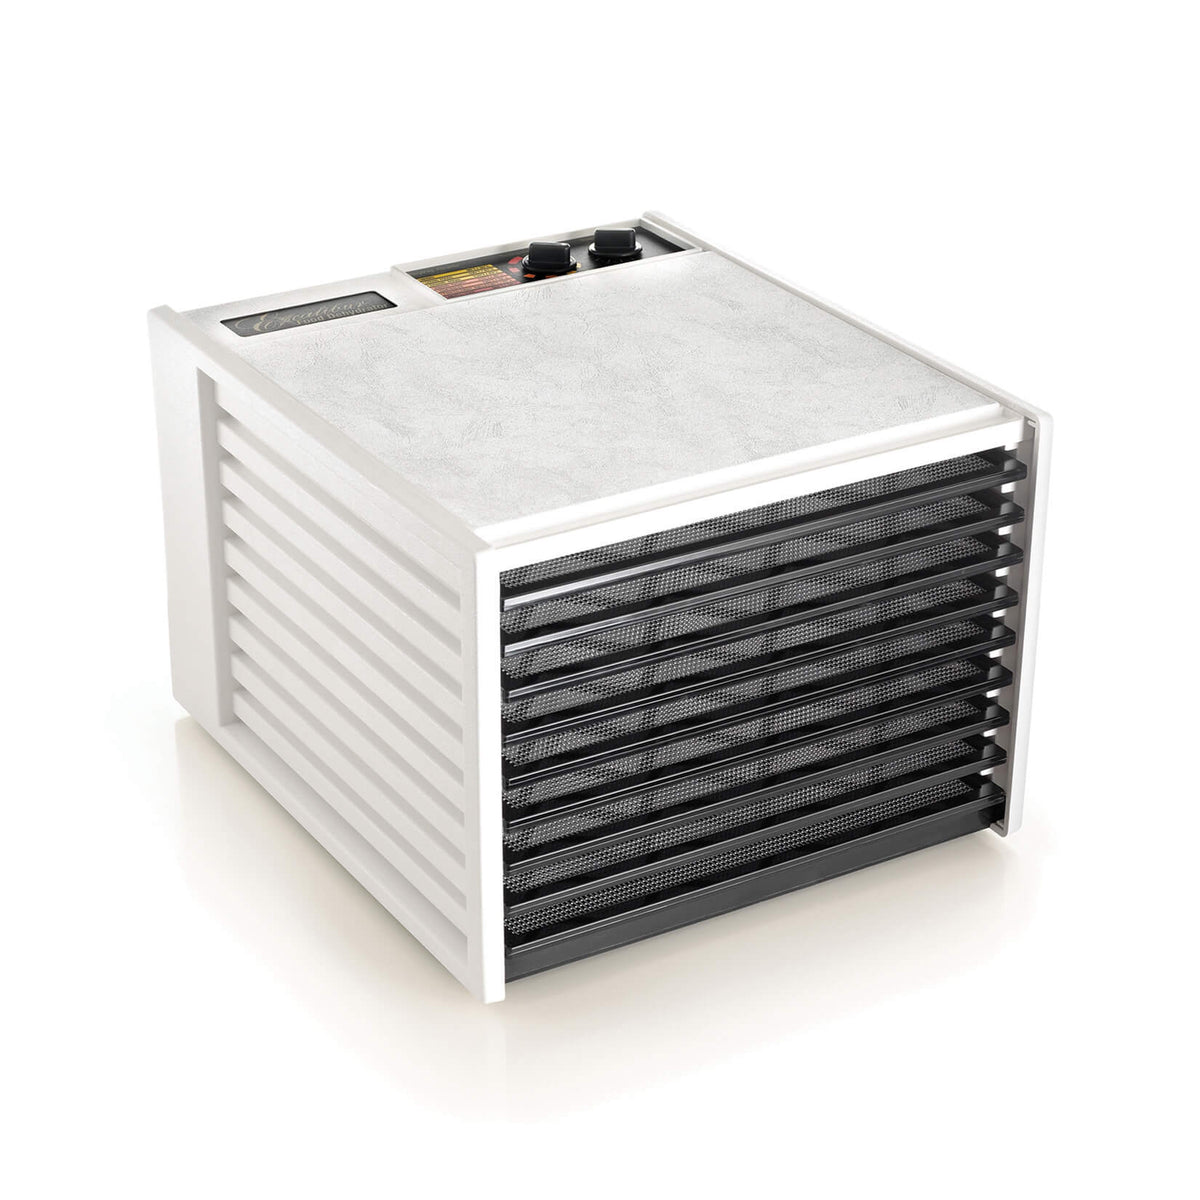 Excalibur 4926TW white 9 tray dehydrator with door open and trays in.